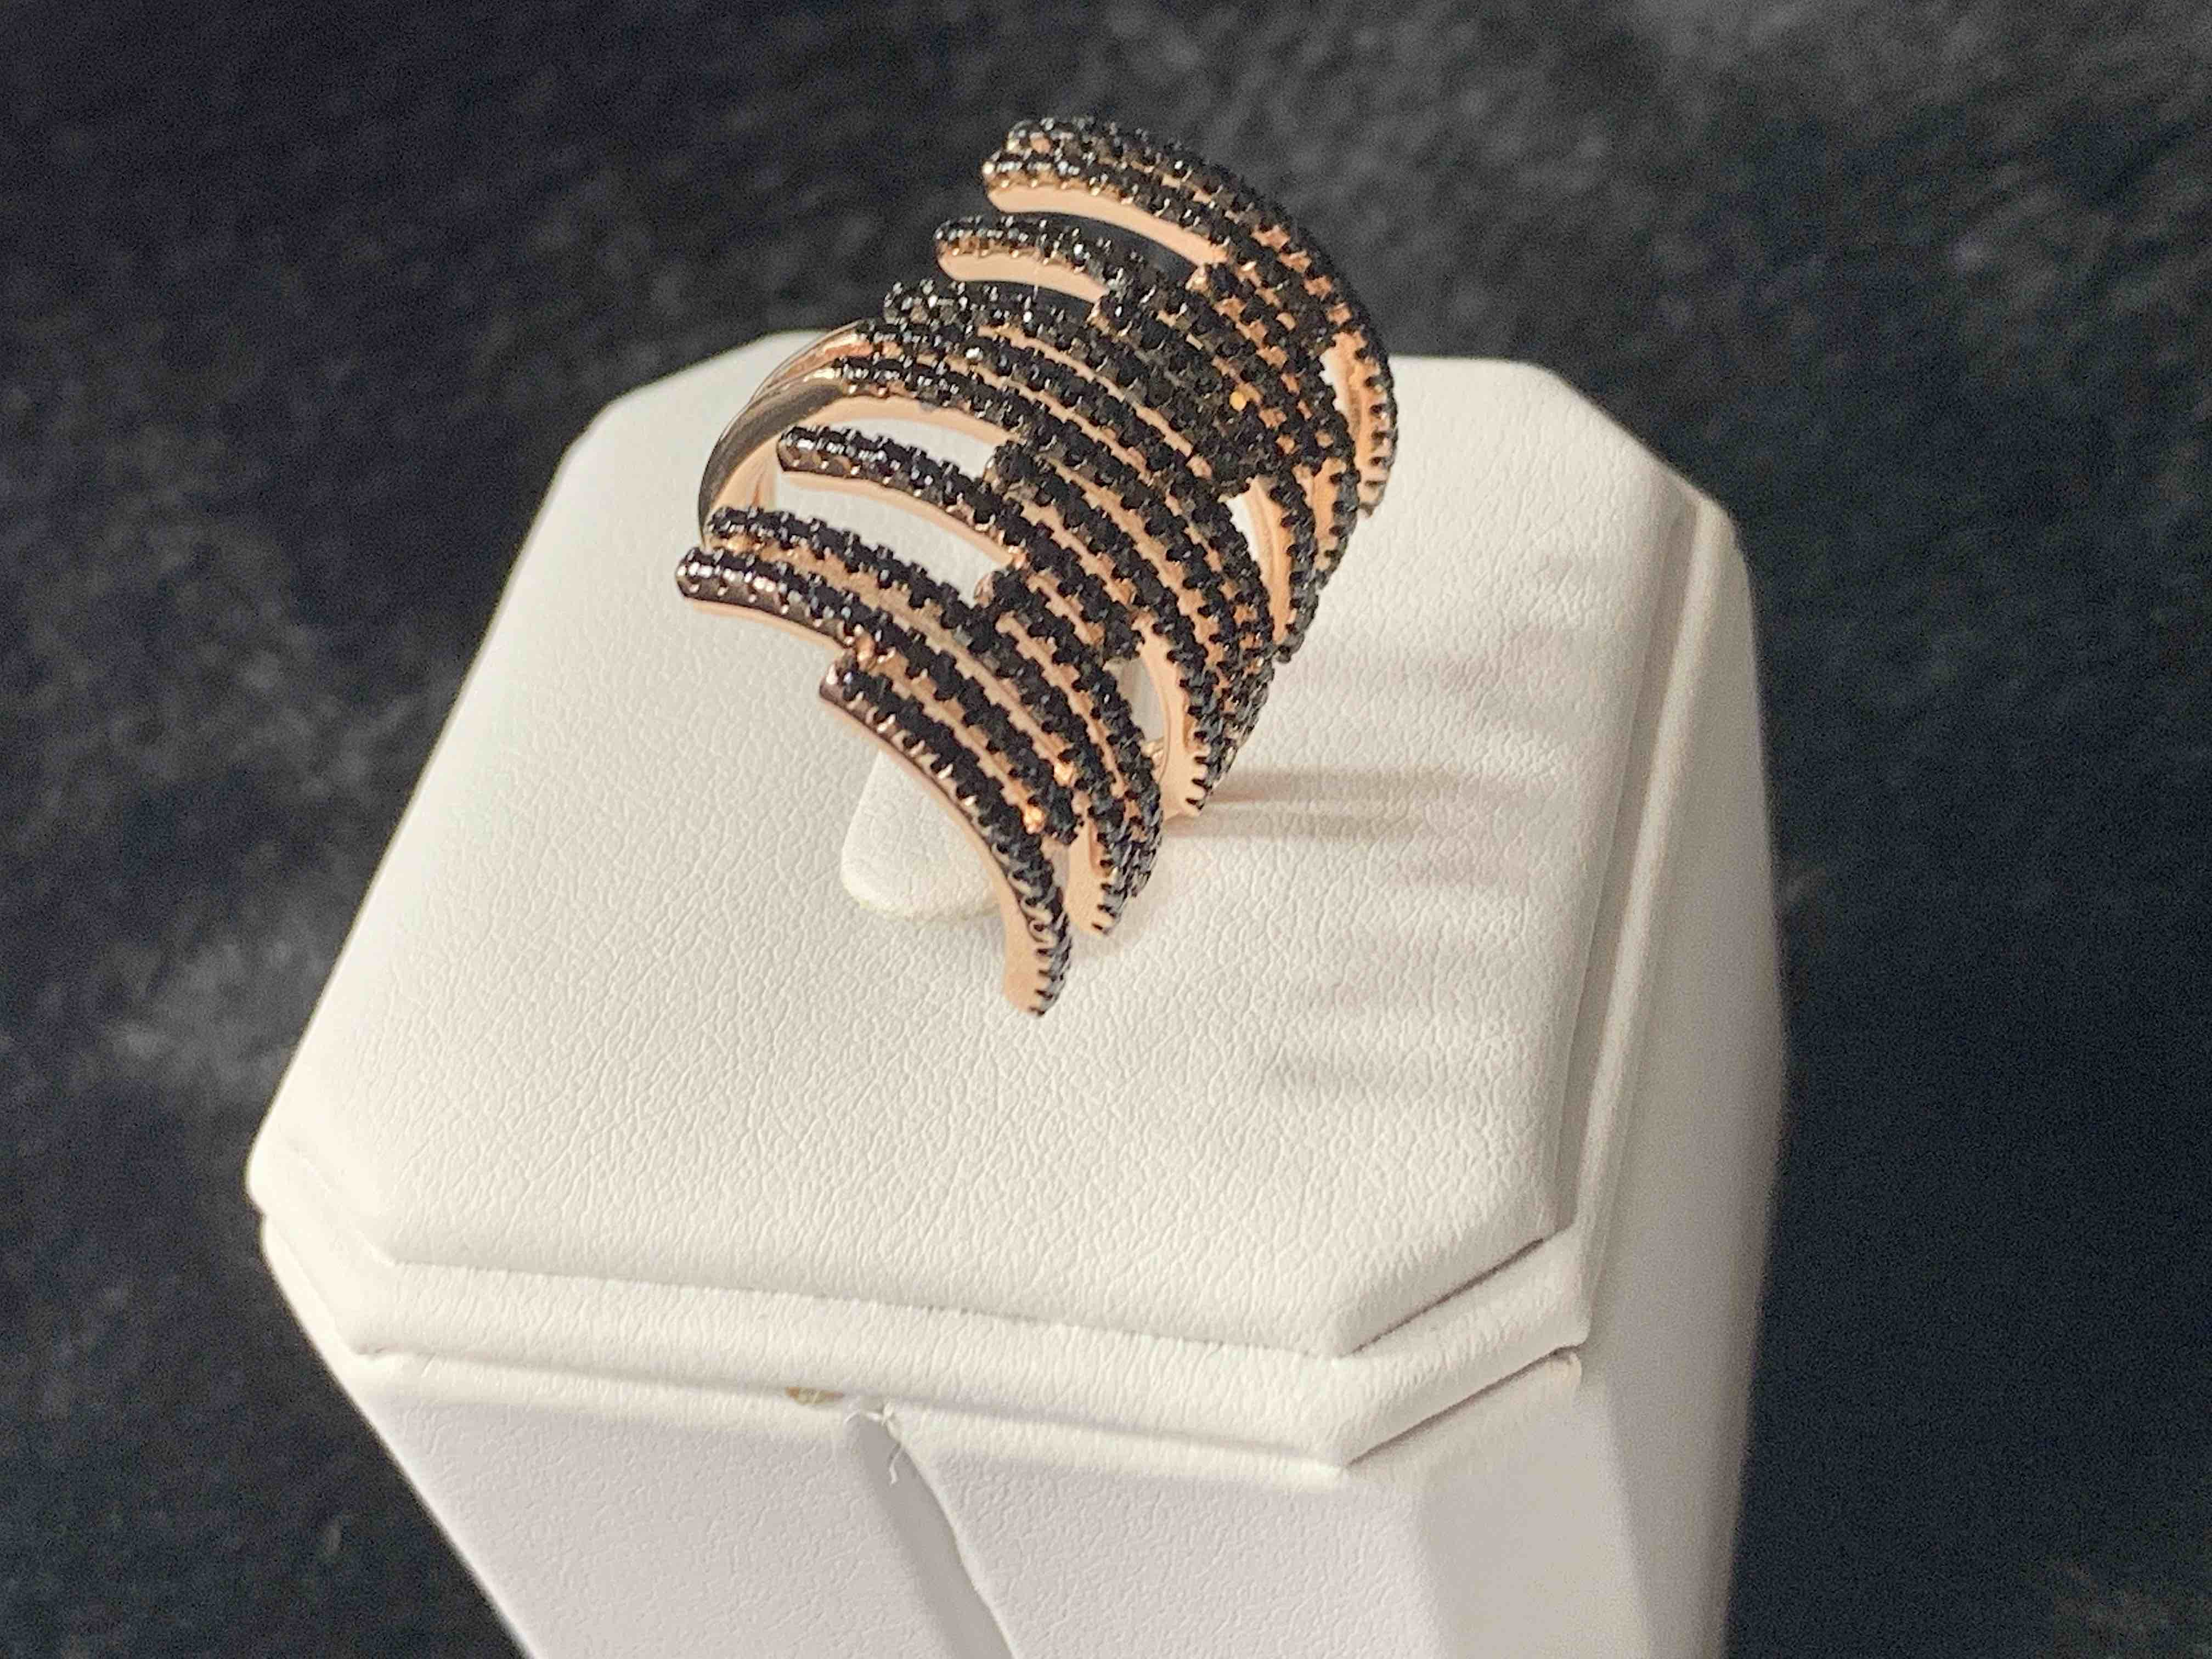 S925 Sterling Silver Exotic Ring With Stones (18K Gold/Rose Gold Plated)